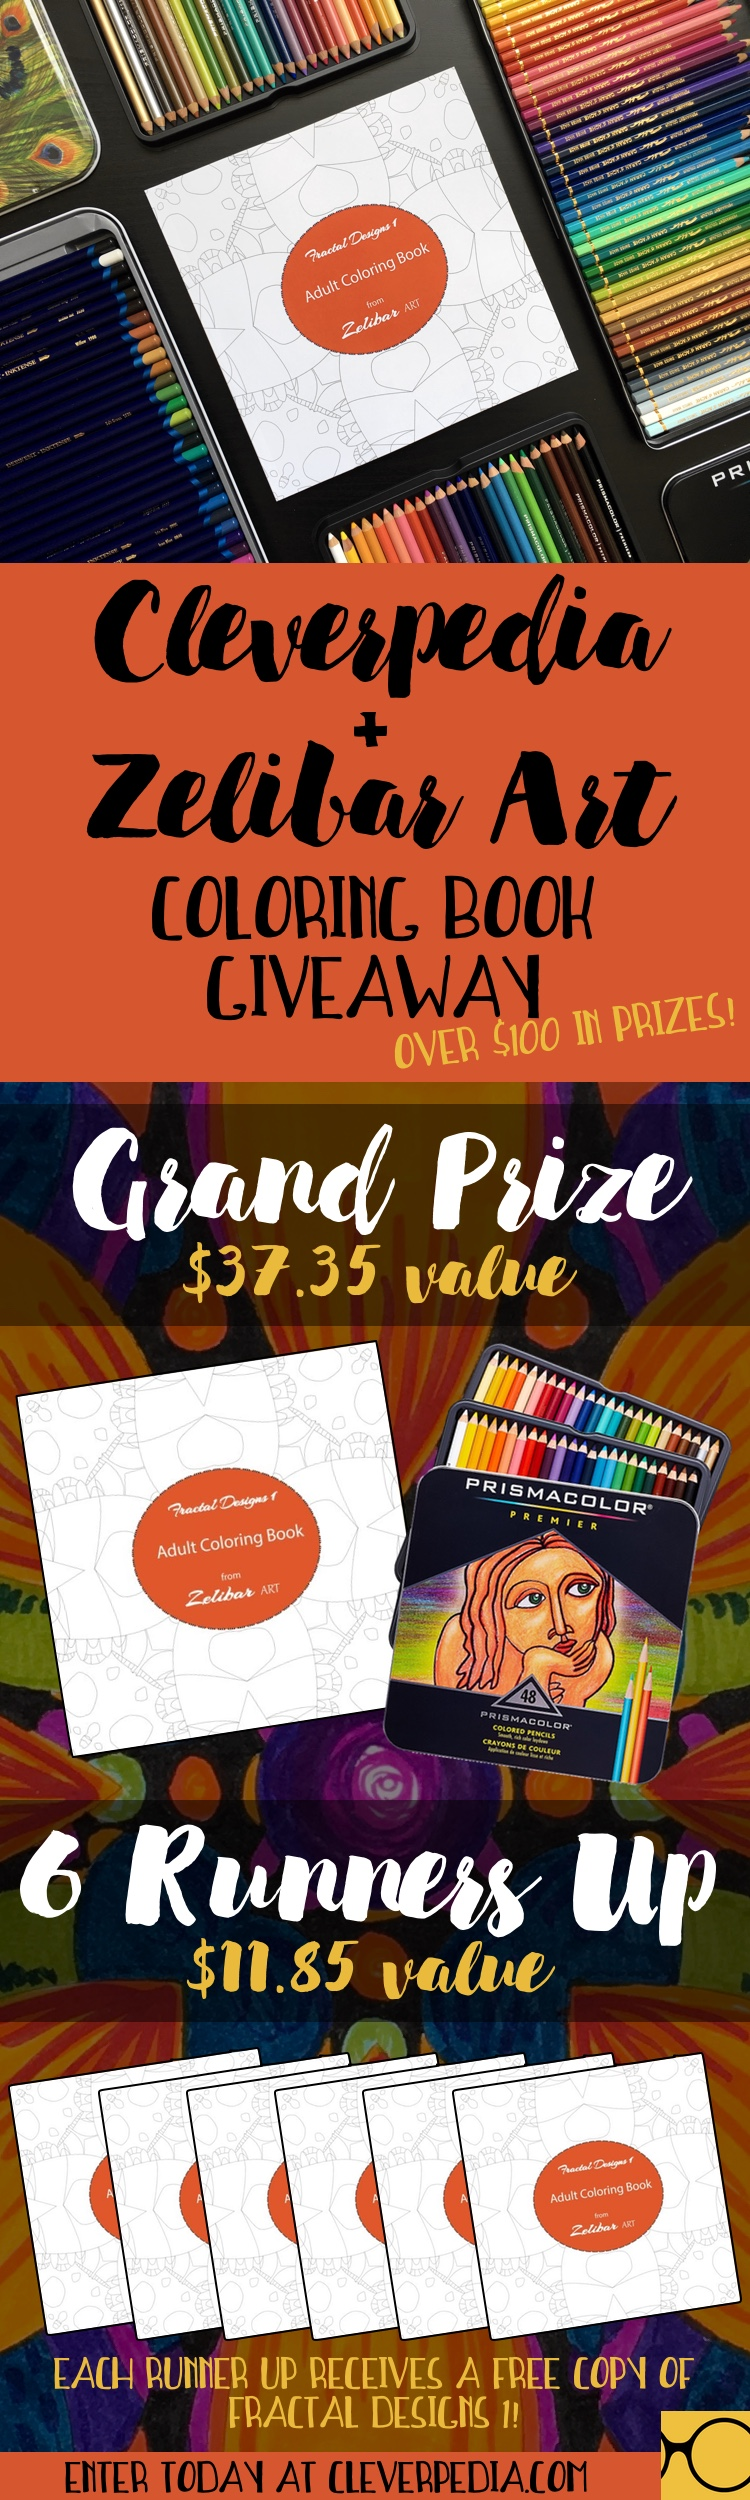 The Cleverpedia + Zelibar Art Coloring Book Giveaway is running through April 3, 2017. Seven lucky winners will win a combined total of over $100 in prizes! Enter today at cleverpedia.com!